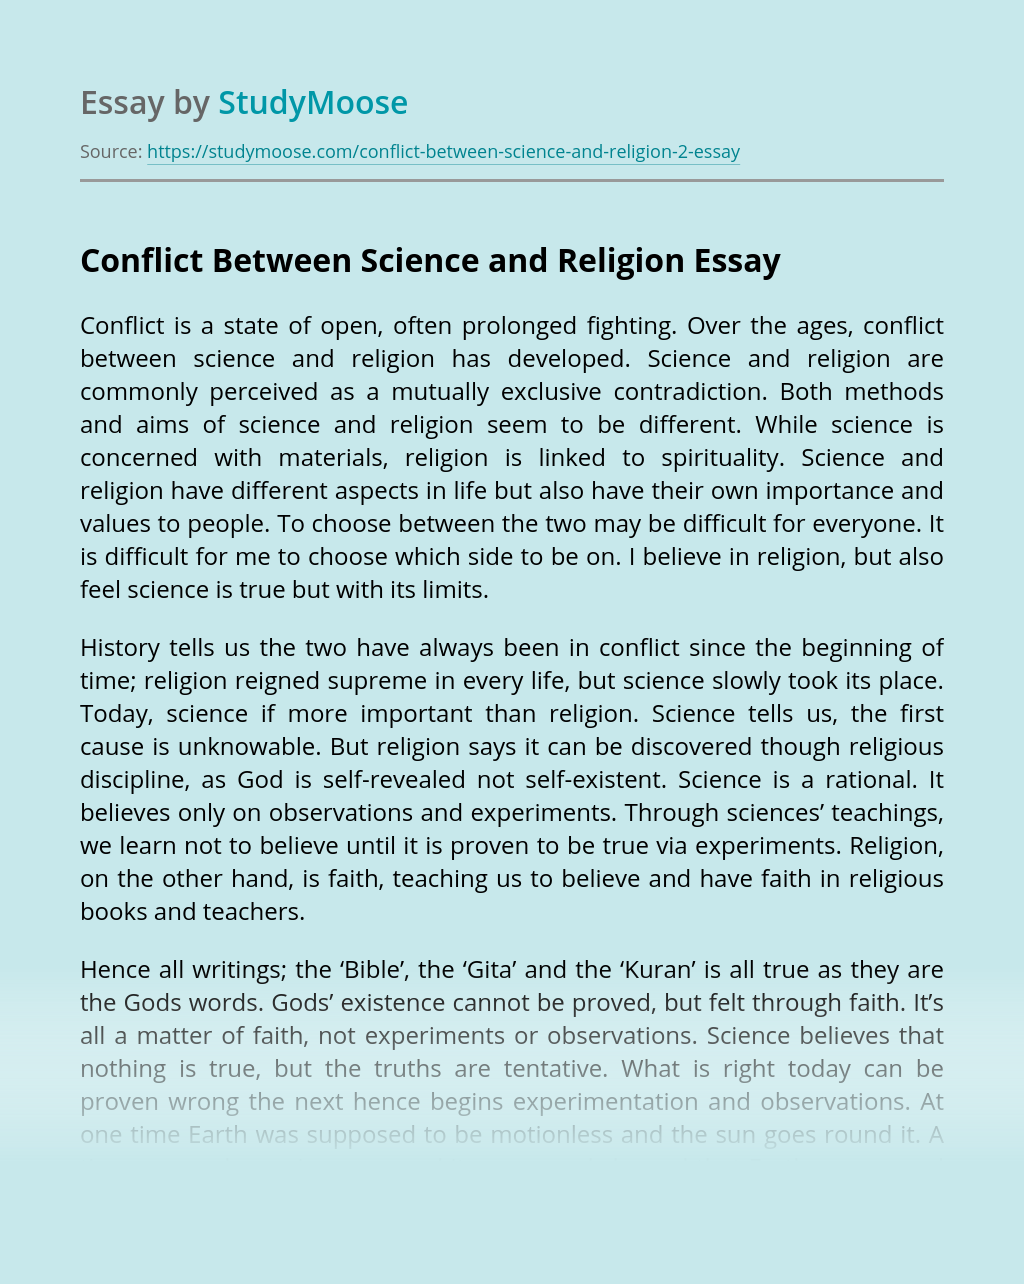 Conflict Between Science and Religion